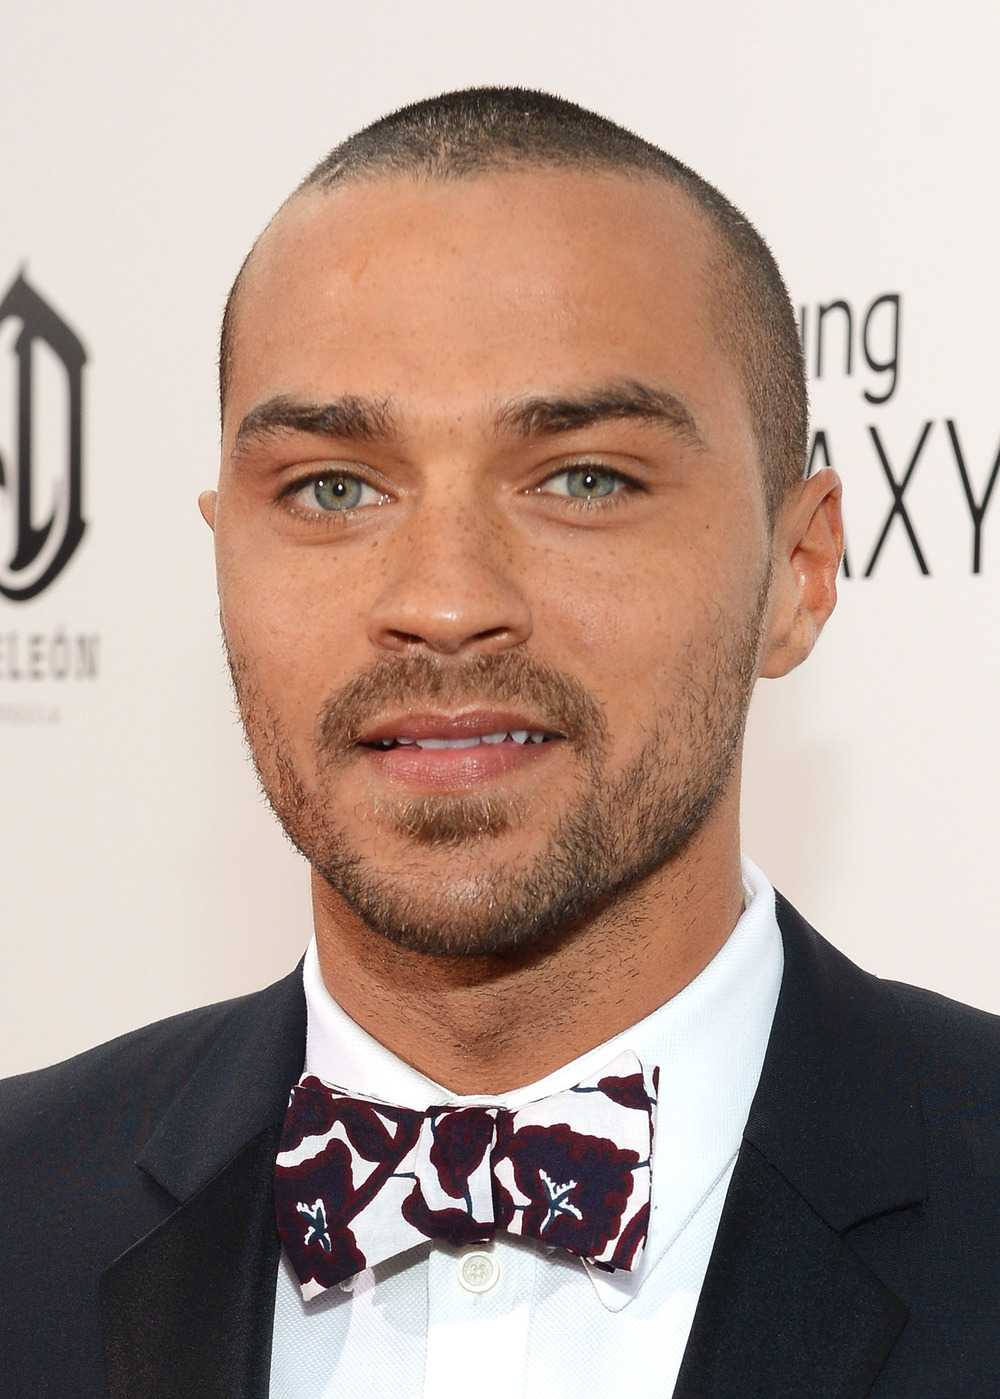 Grey's Anatomy: Why Did Jackson Stand Up Twice at the Wedding? Jesse Williams Says…